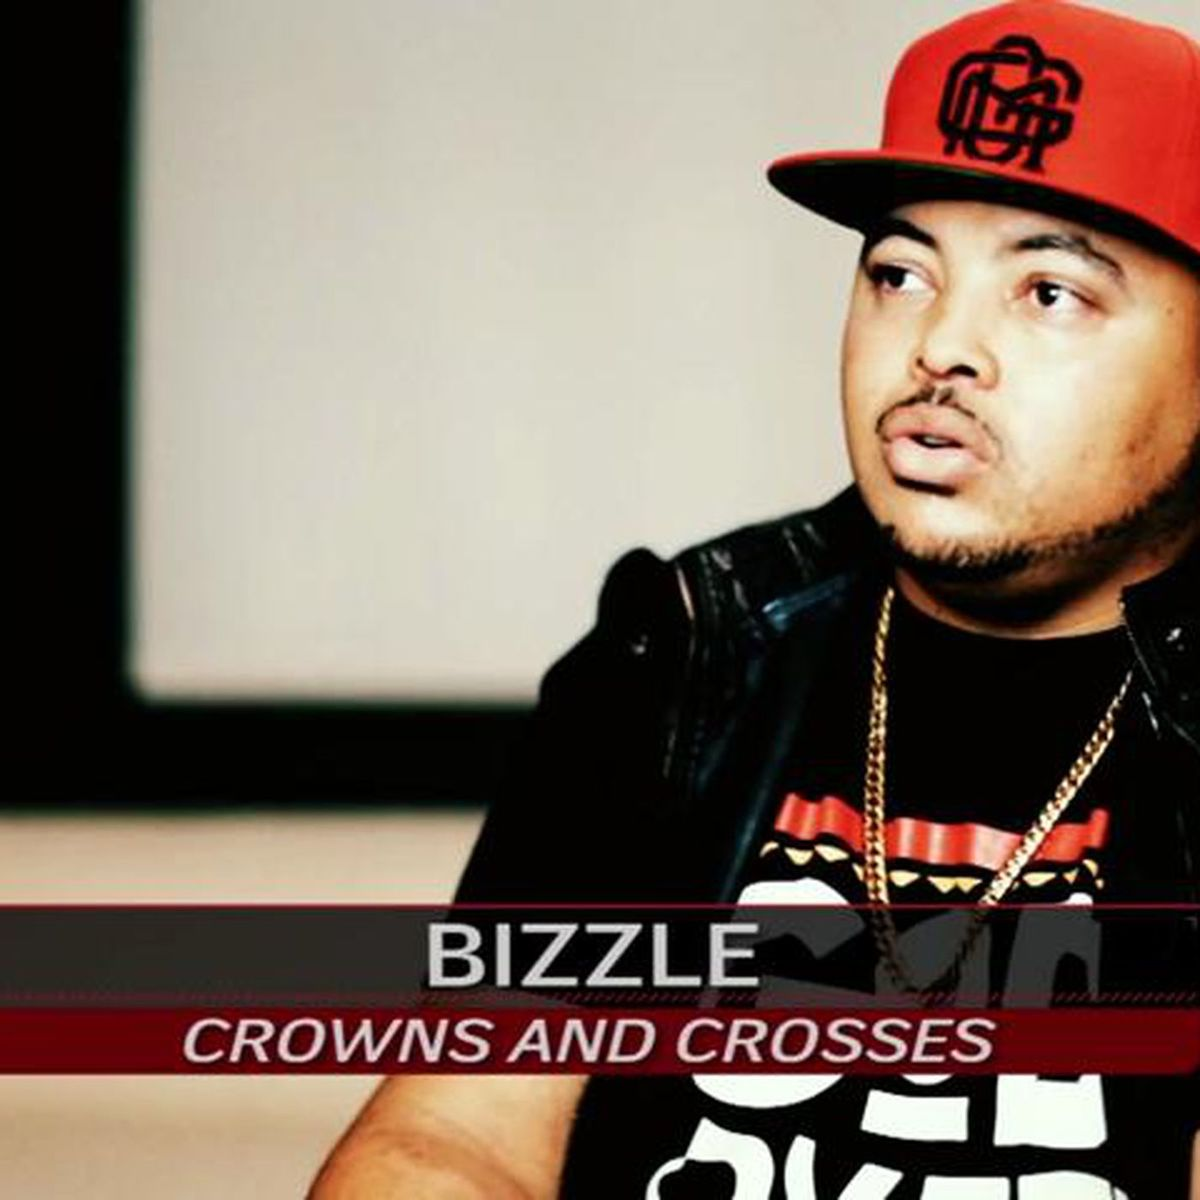 What Are Your Thoughts On This Album - Bizzle - Crowns & Crosses